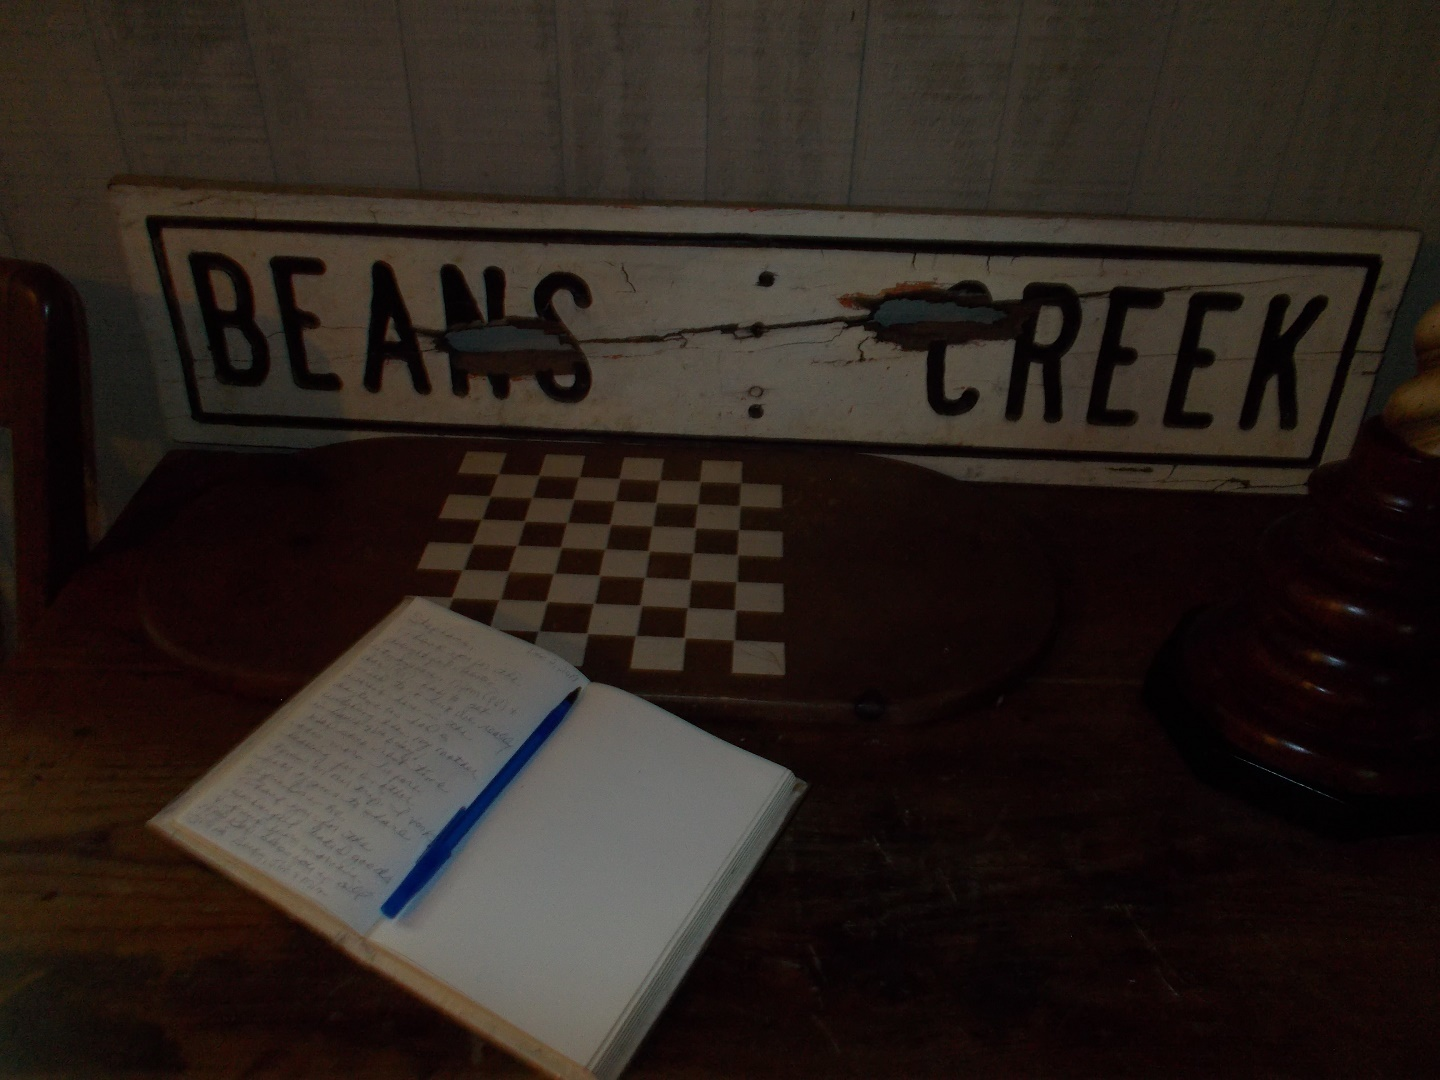 A sign on a table at Beans Creek Ranch Cabin.